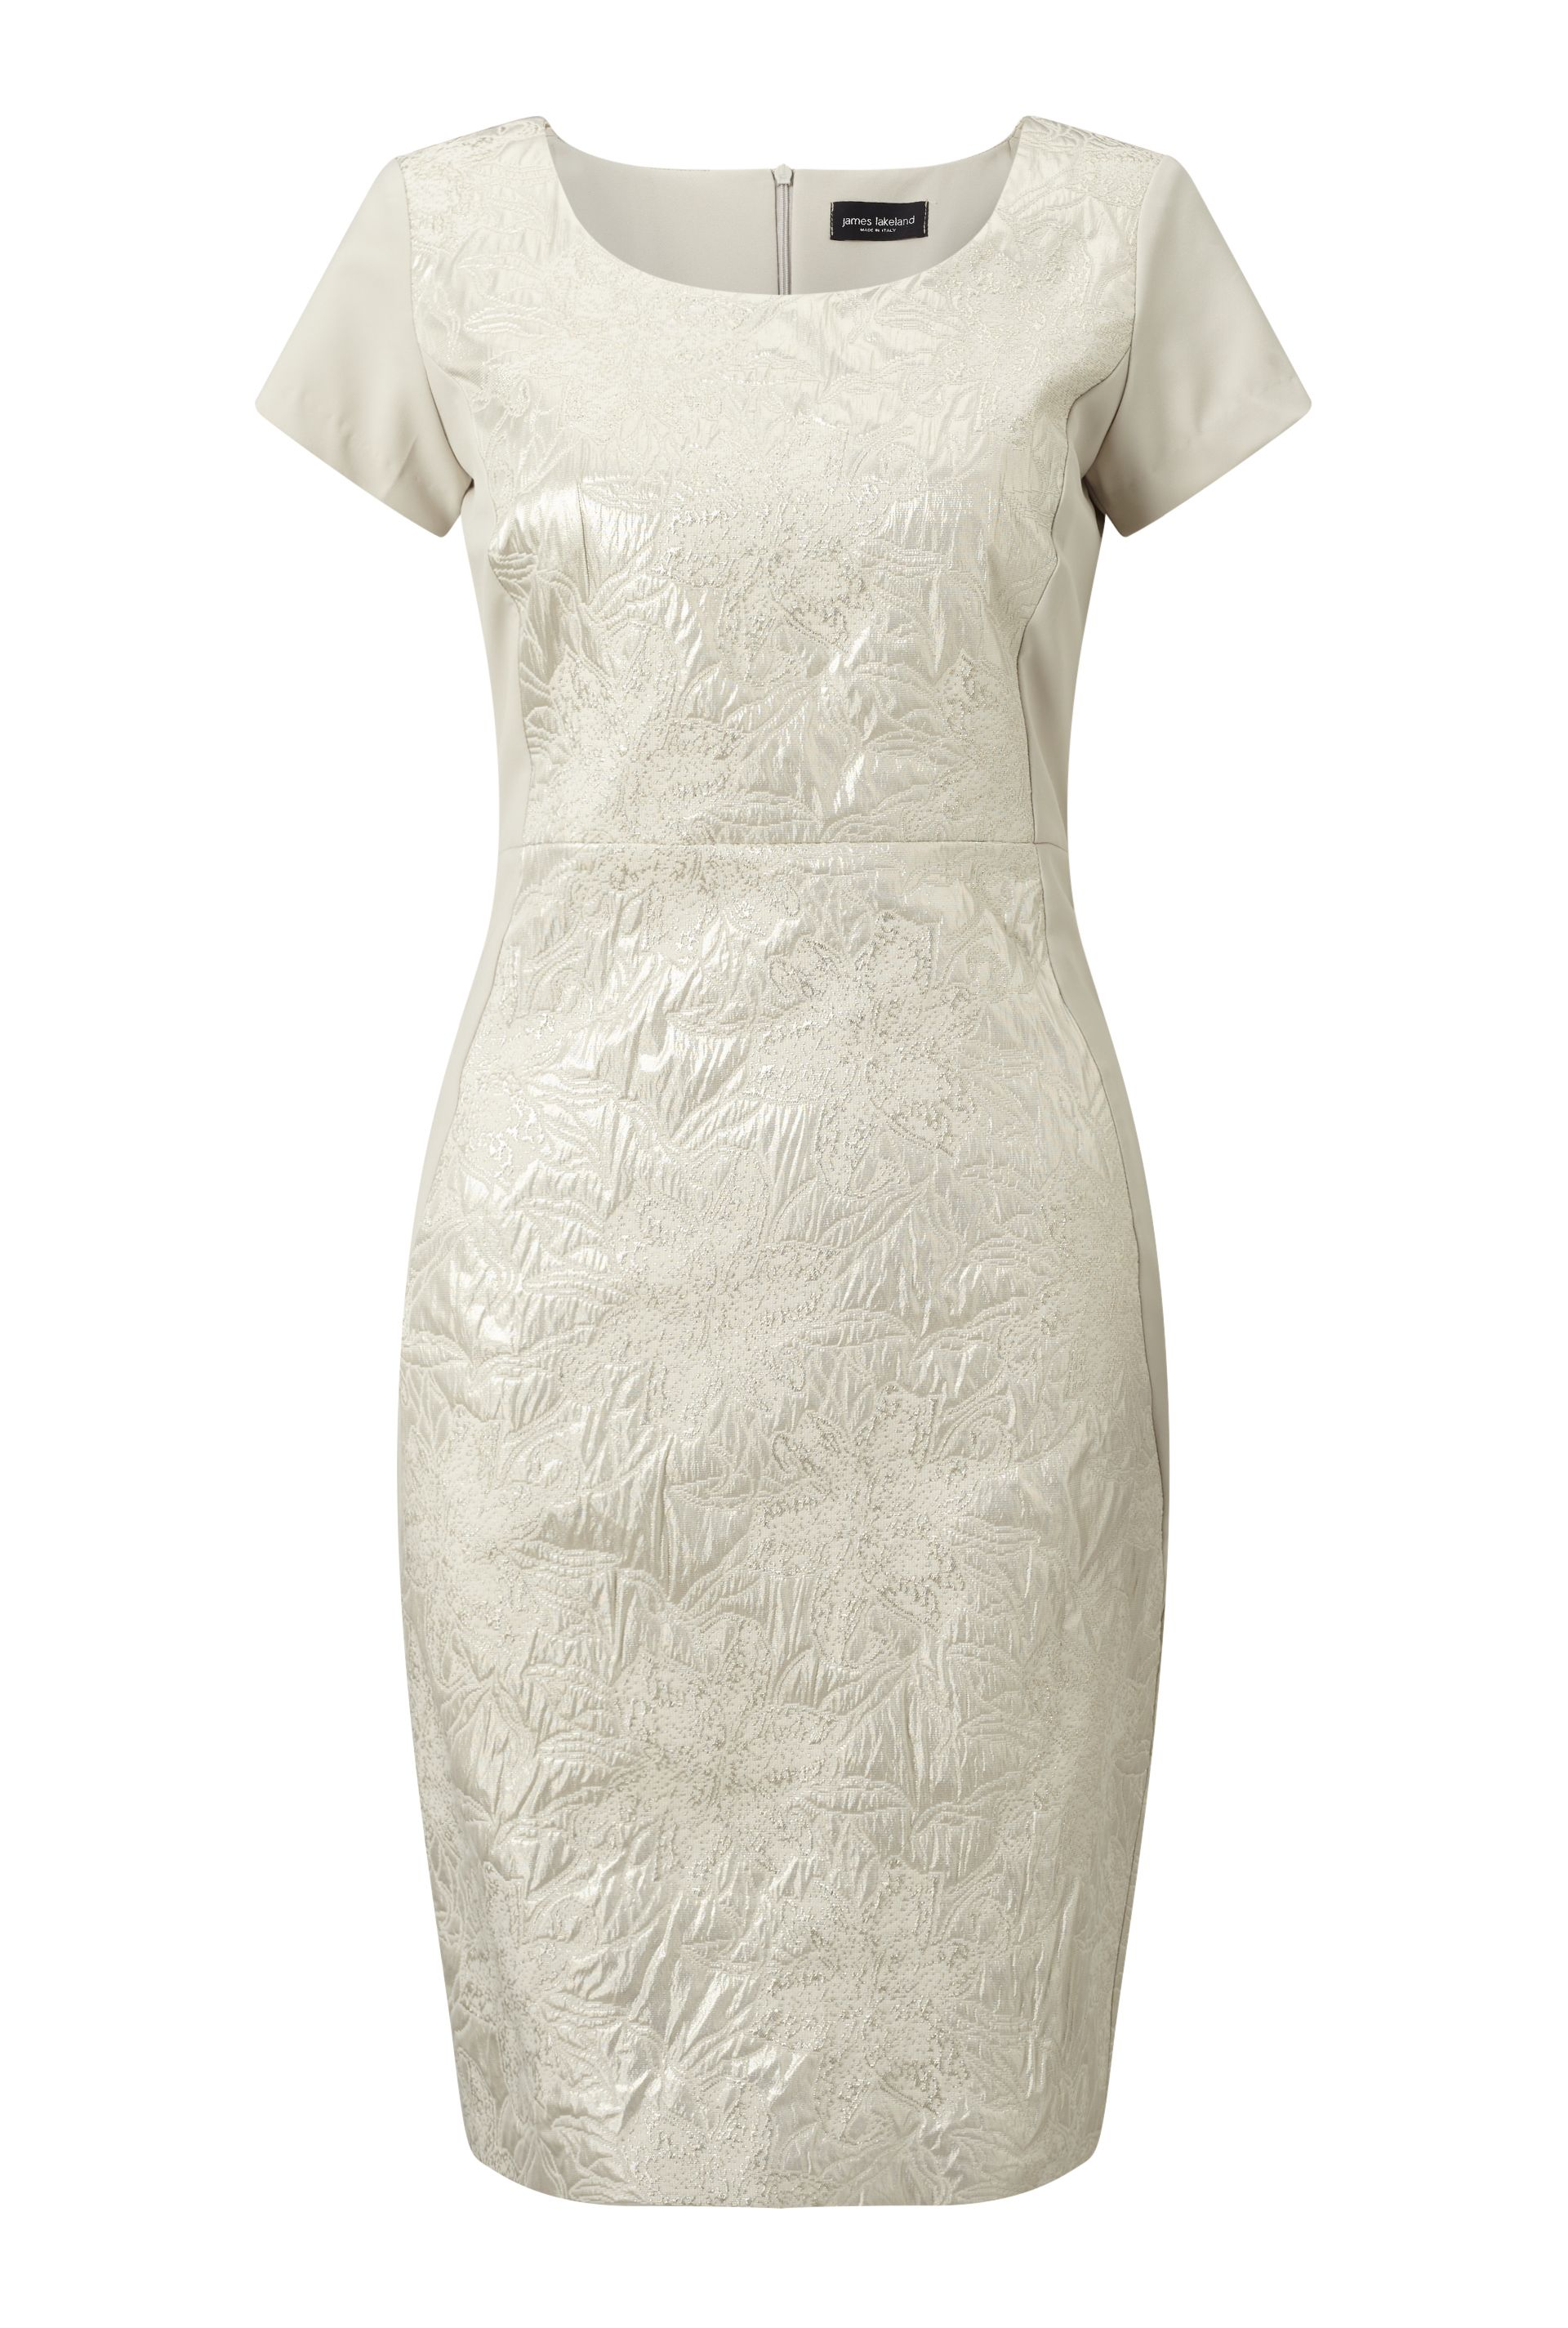 James Lakeland Shimmer Jacquard Dress, White